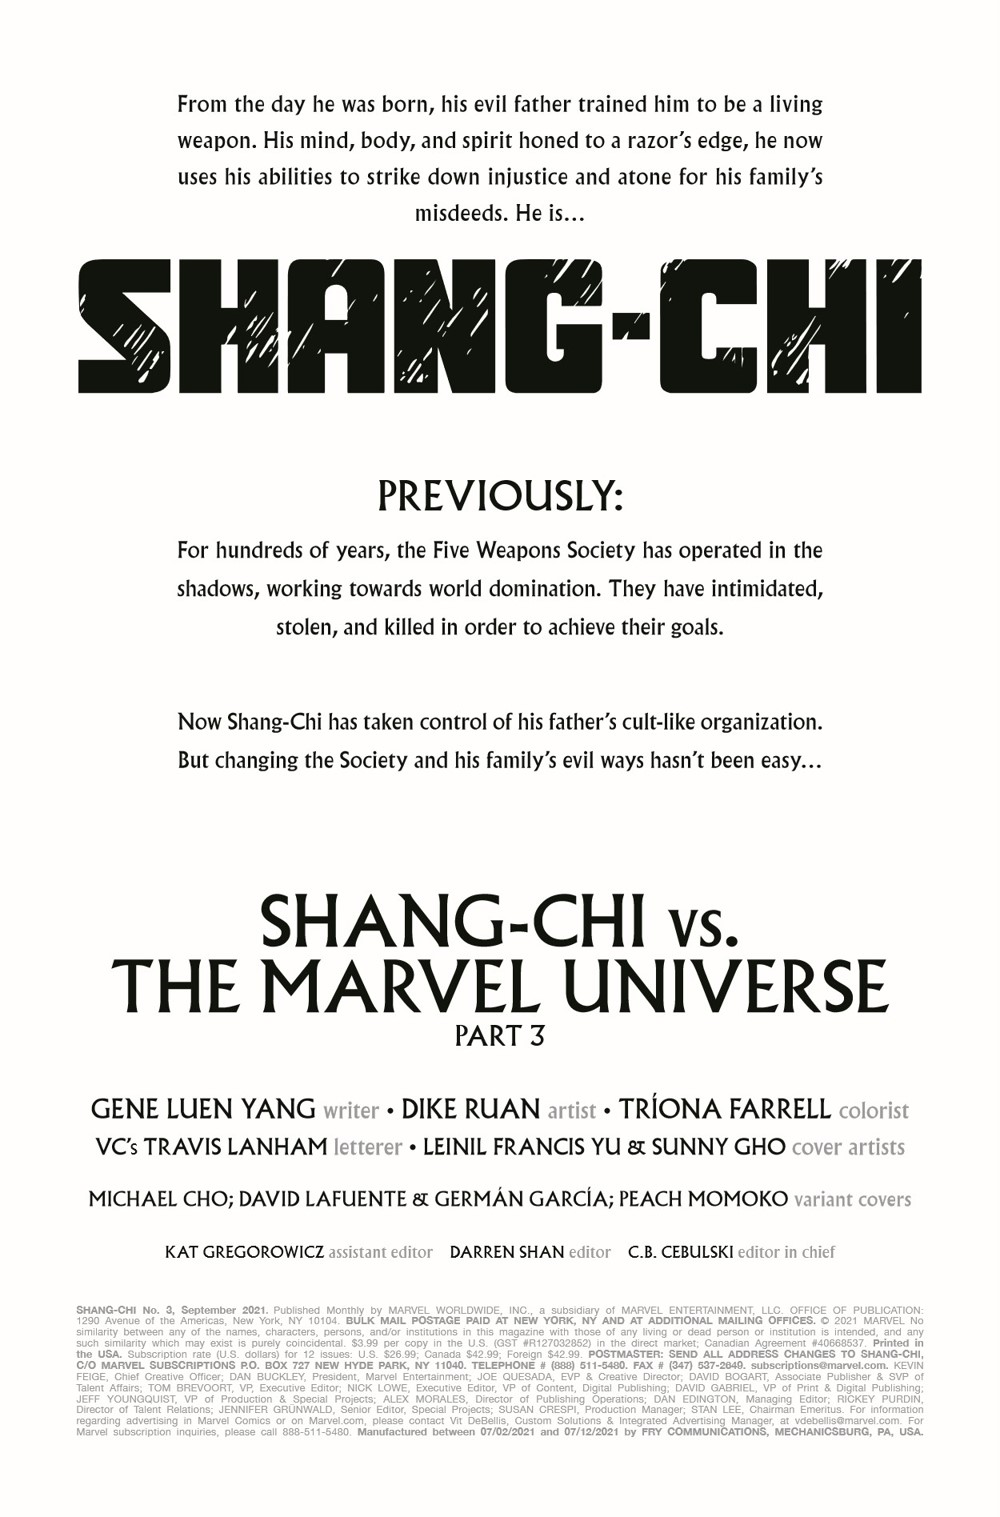 SHANGCHI2021003_Preview-2 ComicList Previews: SHANG-CHI #3